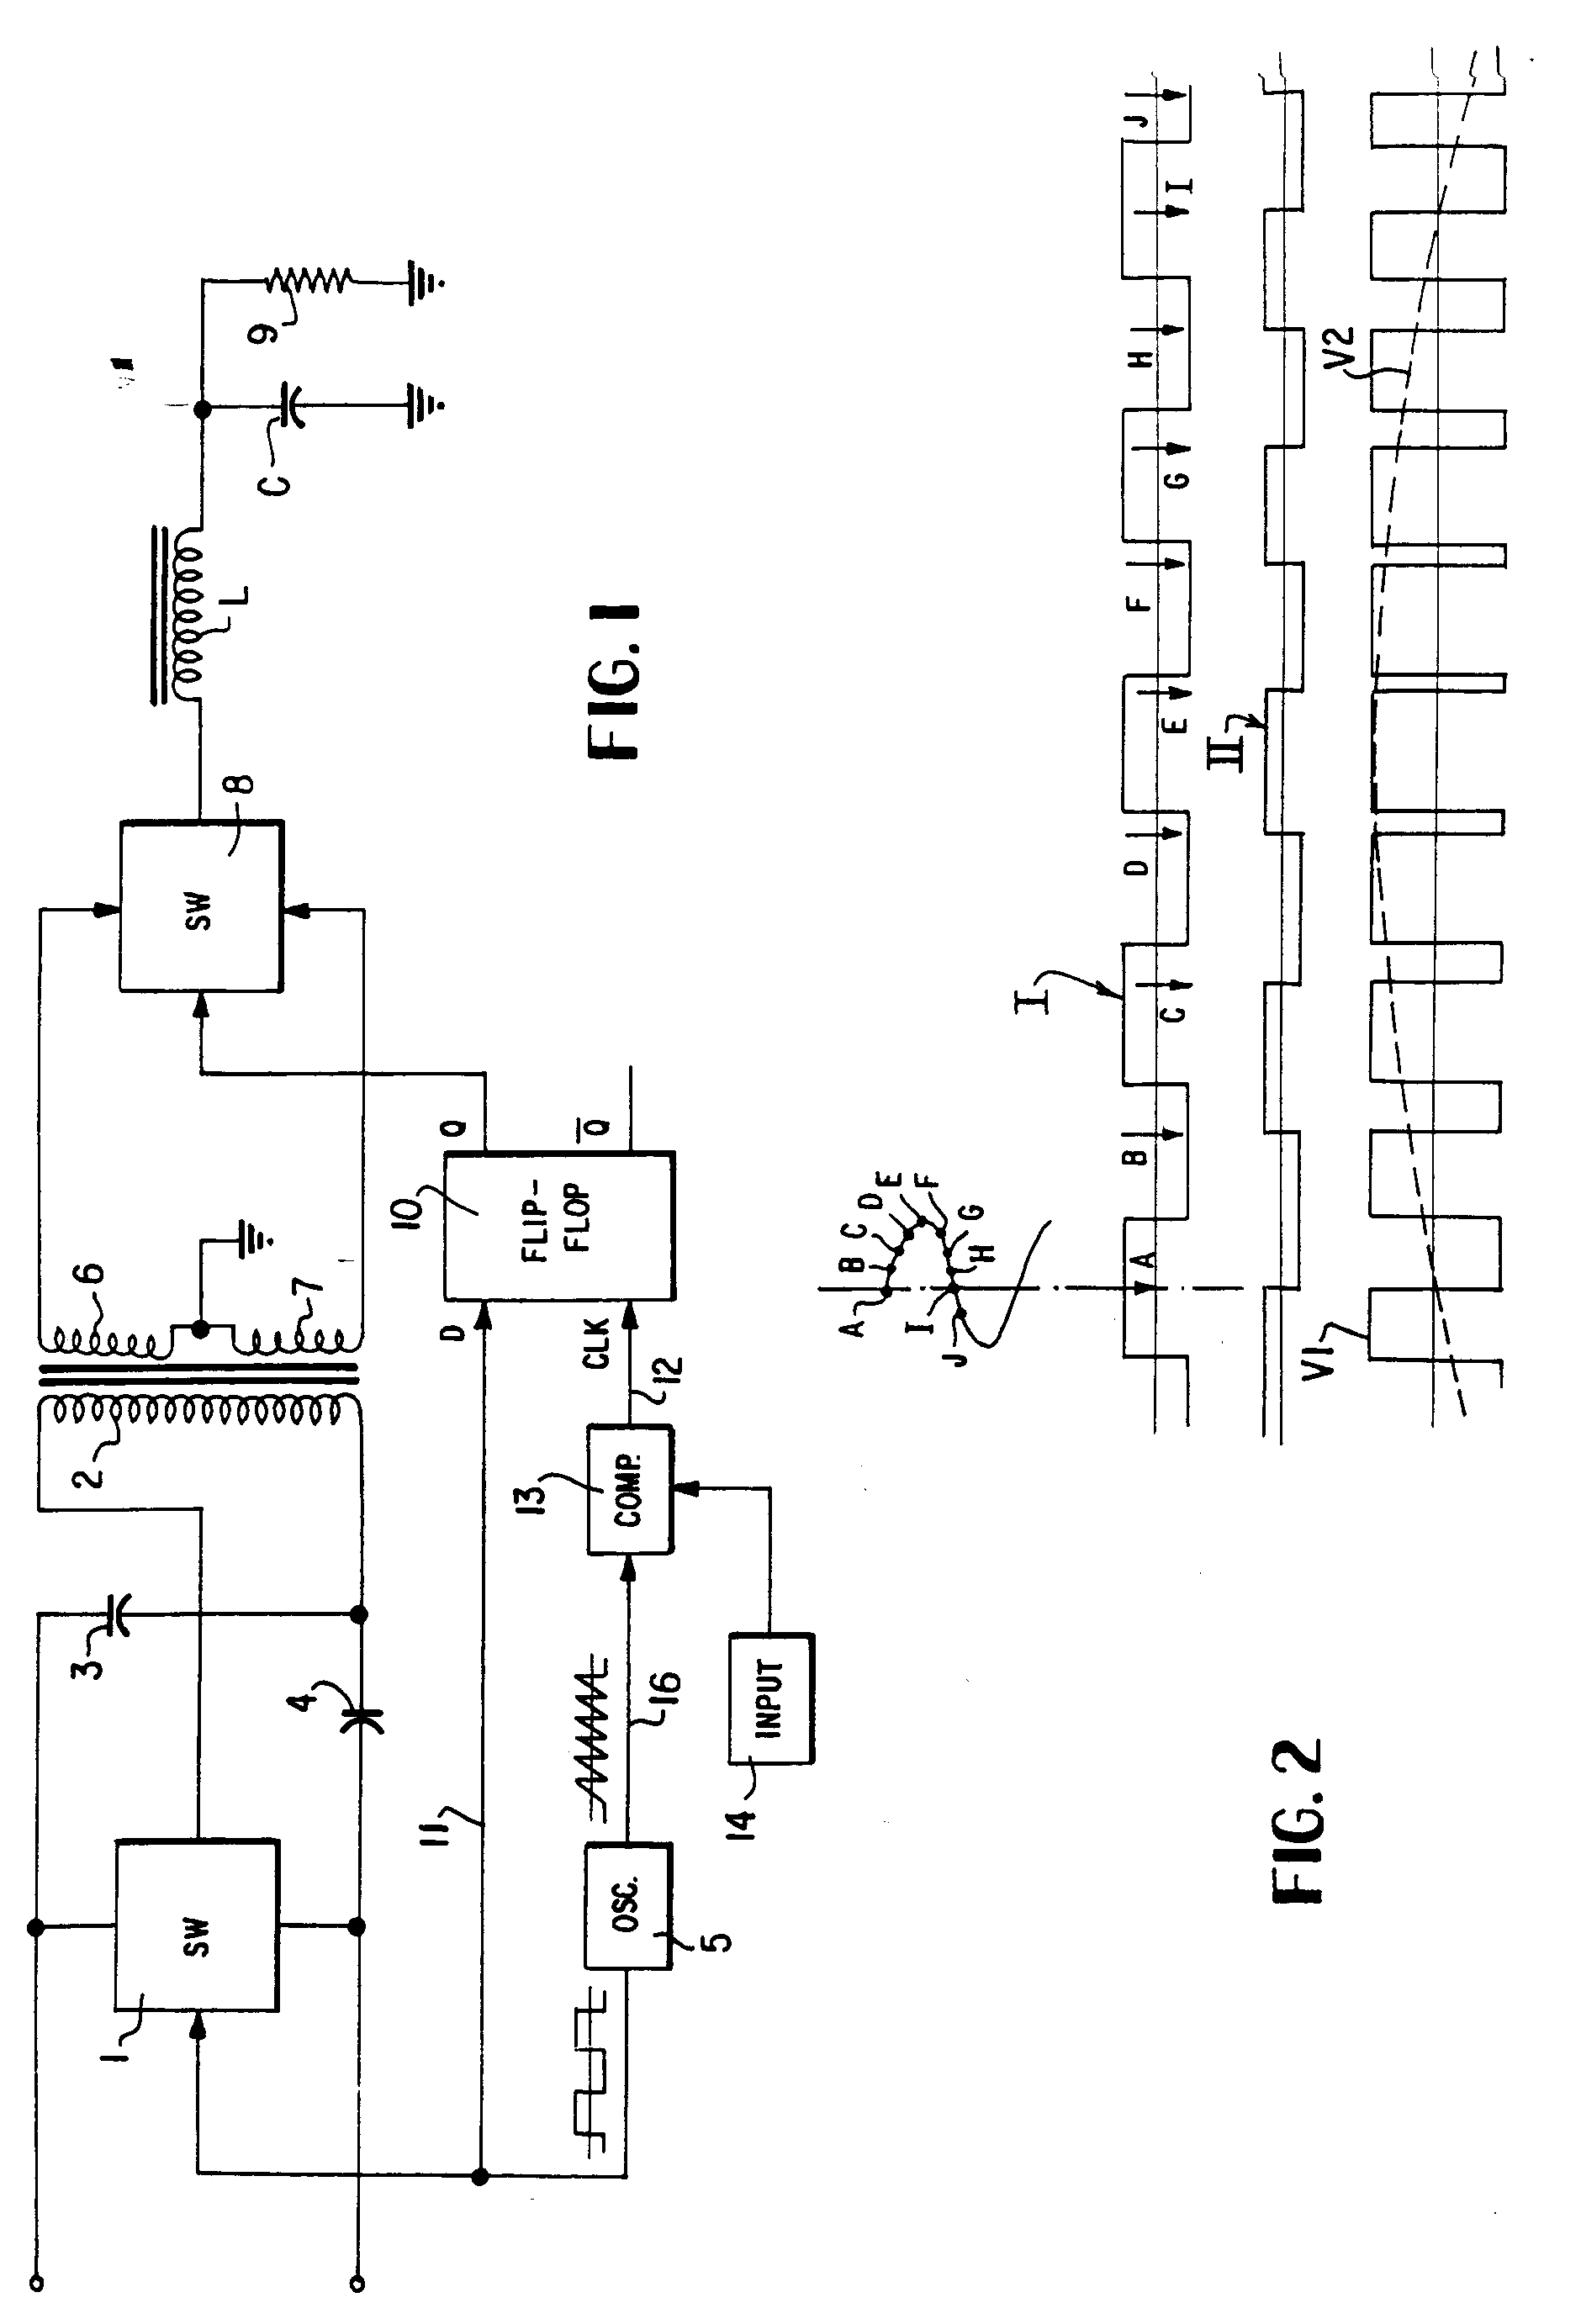 patent ep0386933b1 - audio amplifier with phase modulated pulse width modulation